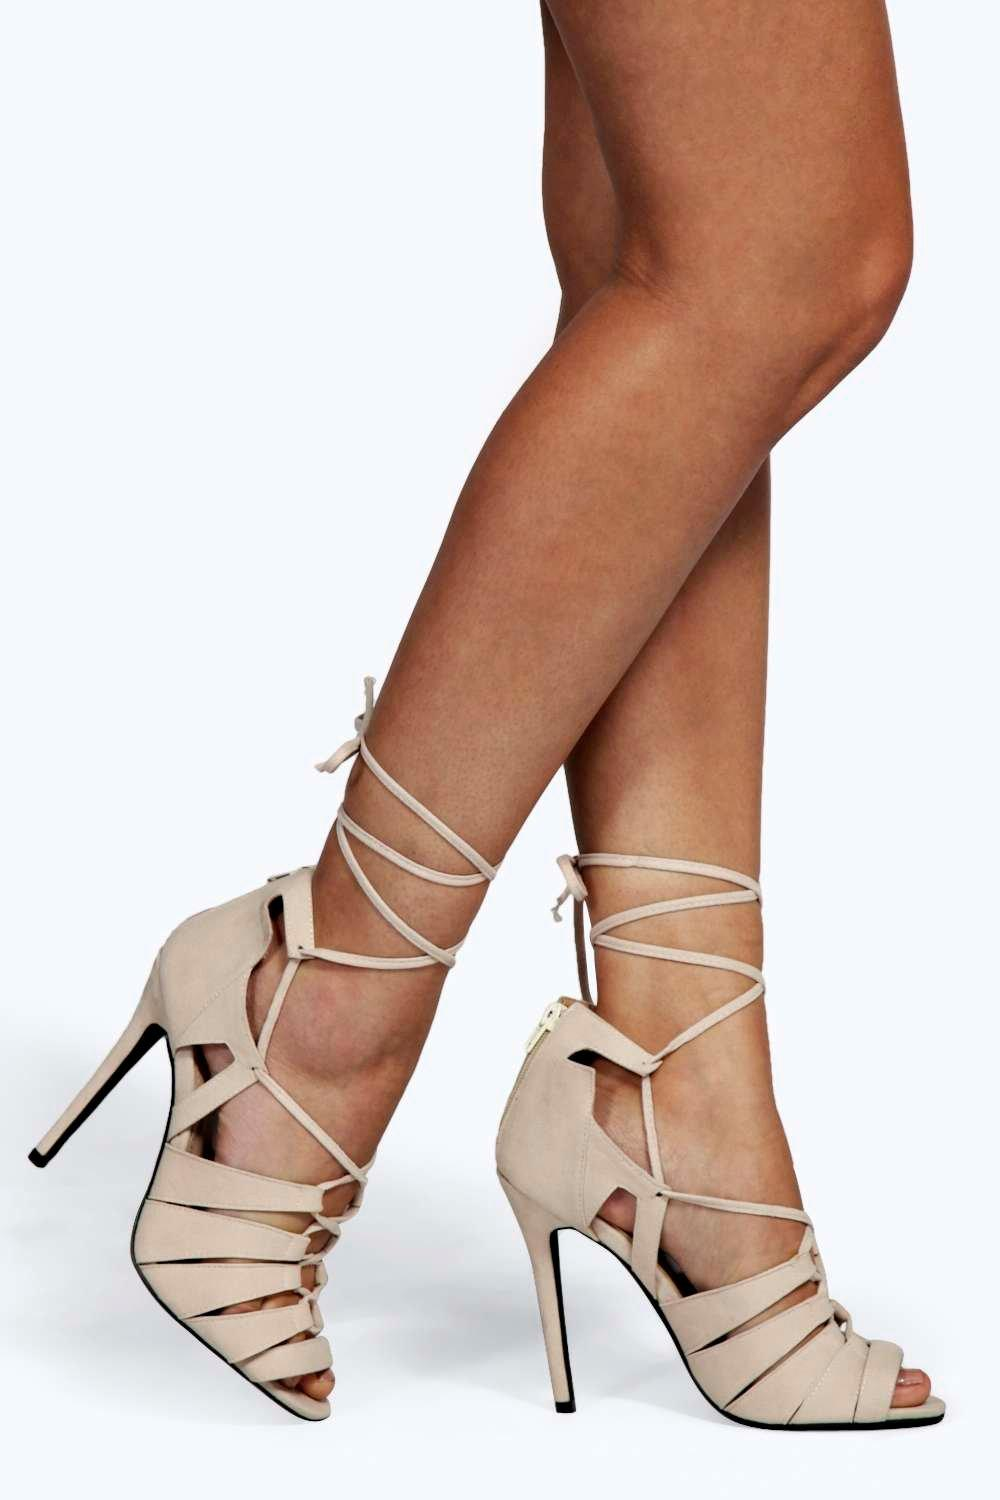 What Dresses Do Caged Shoes Go With